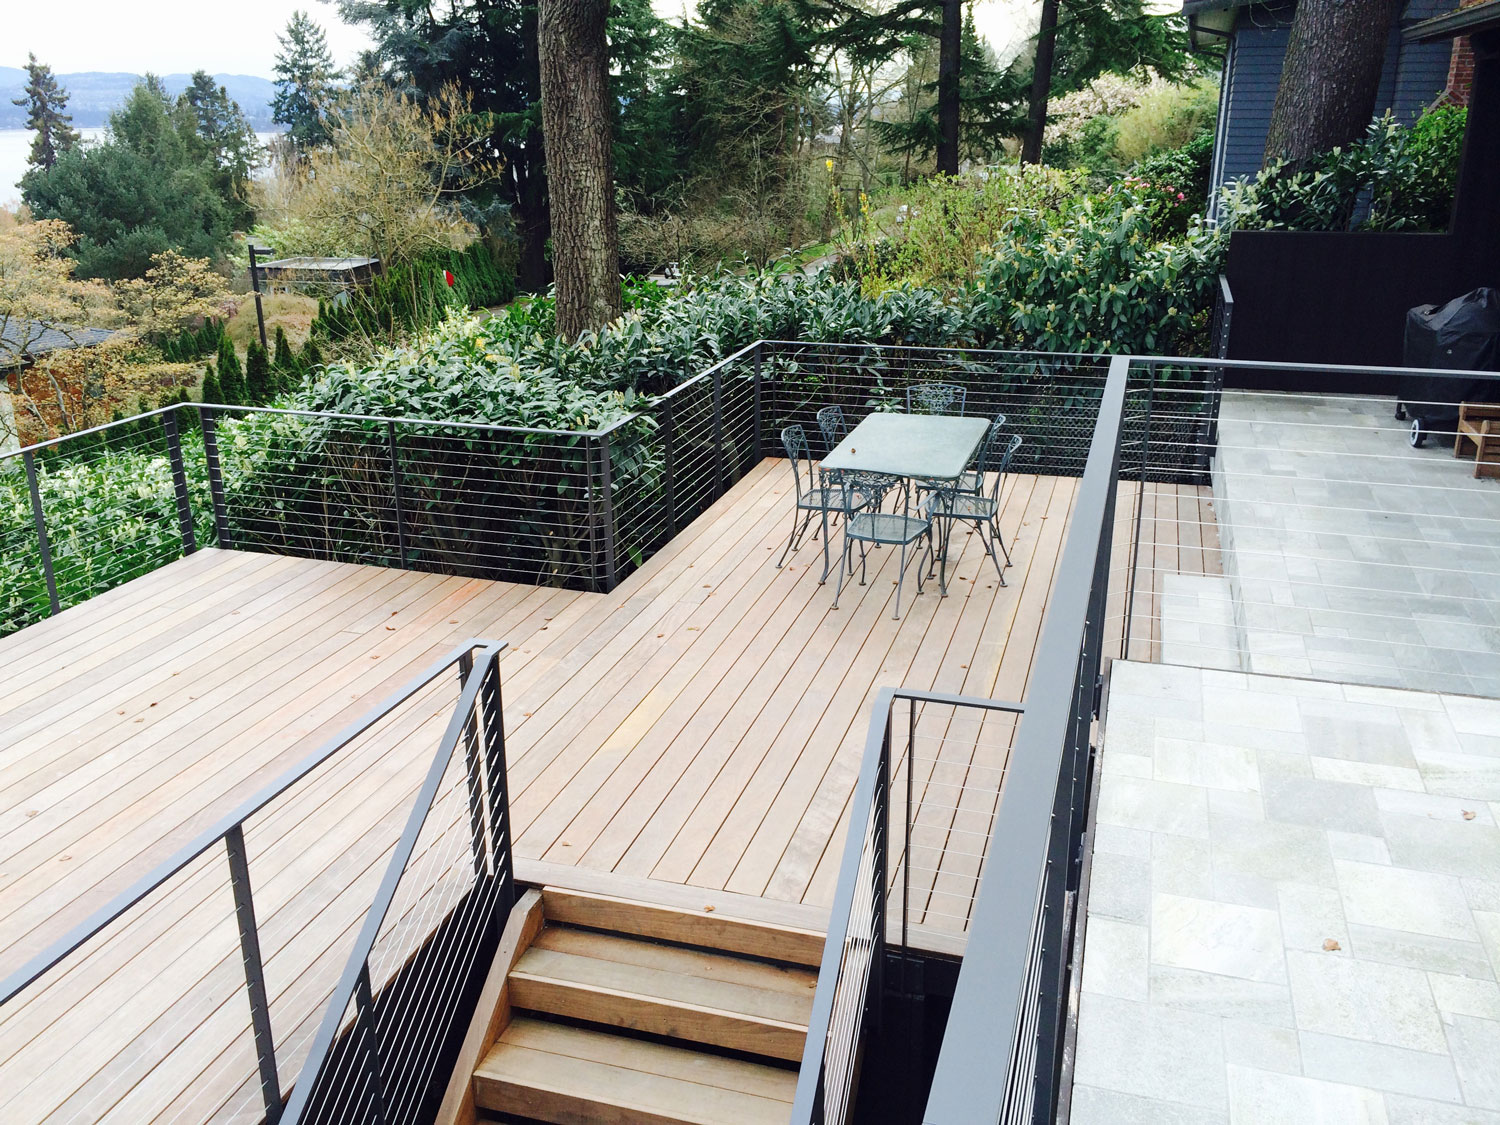 Cable Rail for Large Deck - Multiple Levels - Seattle, WA